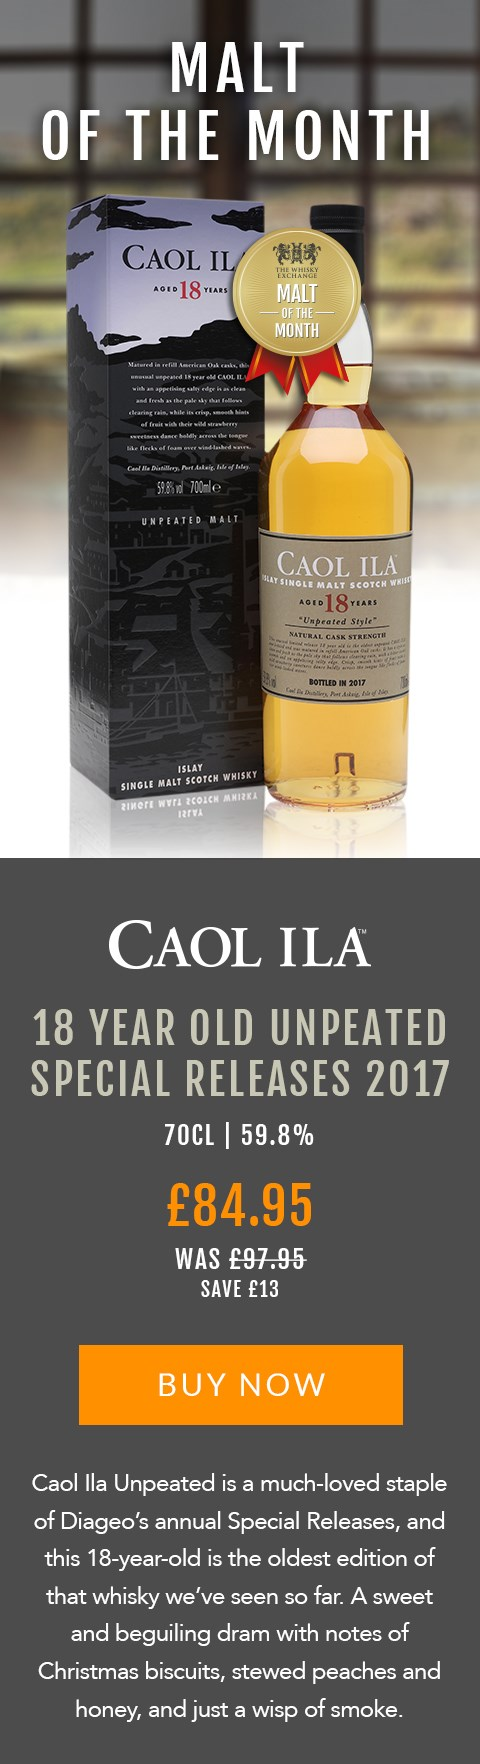 MALT OF THE MONTH  Caol Ila Unpeated 18 Year Old Special Releases 2017  70cl | 59.8%  £84.95 (was £97.95)  Save £13  BUY NOW > https://www.thewhiskyexchange.com/feature/maltofthemonth  Caol Ila Unpeated is a much-loved staple of Diageo's annual Special Releases, and this 18-year-old is the oldest edition of that whisky we've seen so far. A sweet and beguiling dram with notes of Christmas biscuits, stewed peaches and honey, and just a wisp of smoke.